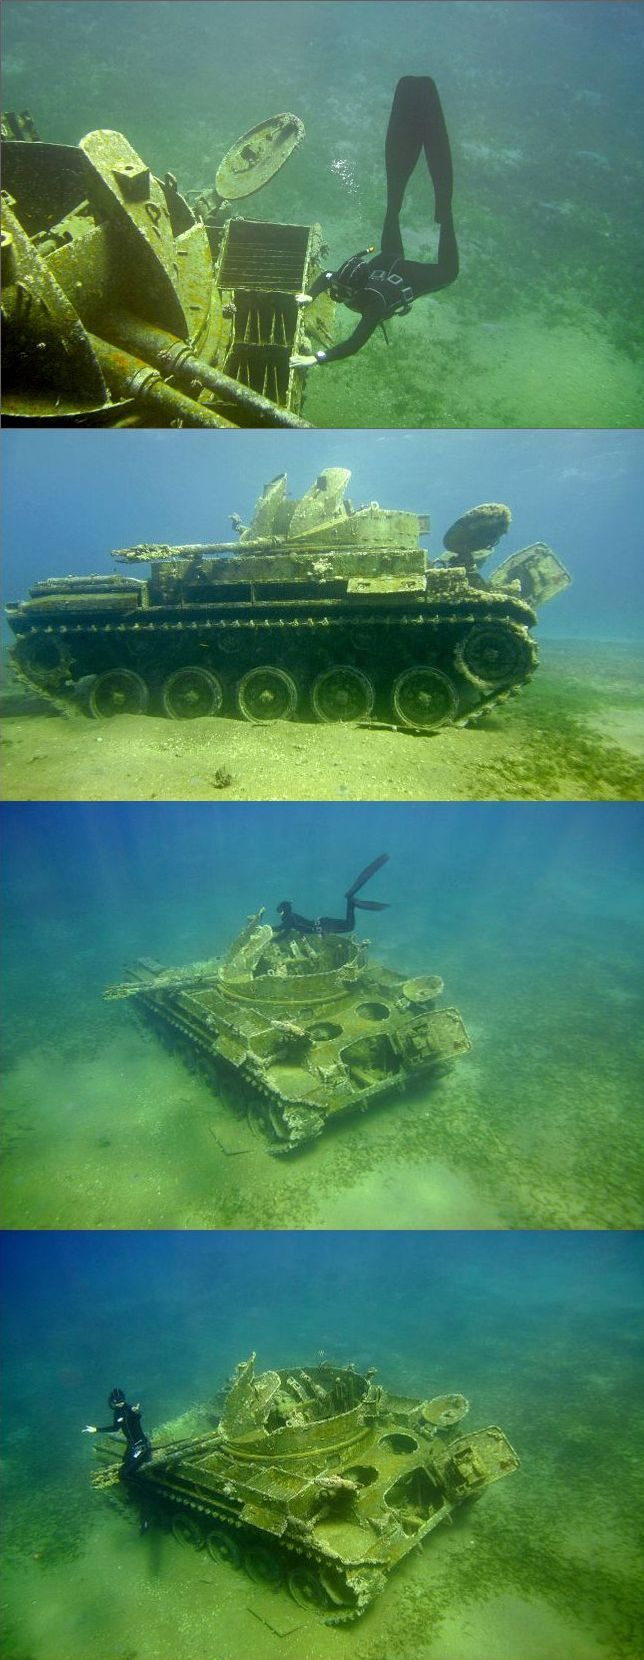 TANK International travel insurance that includes active and adventure sports like diving WW2 wrecks free of charge - check out http://www.clicktravelcover.com/